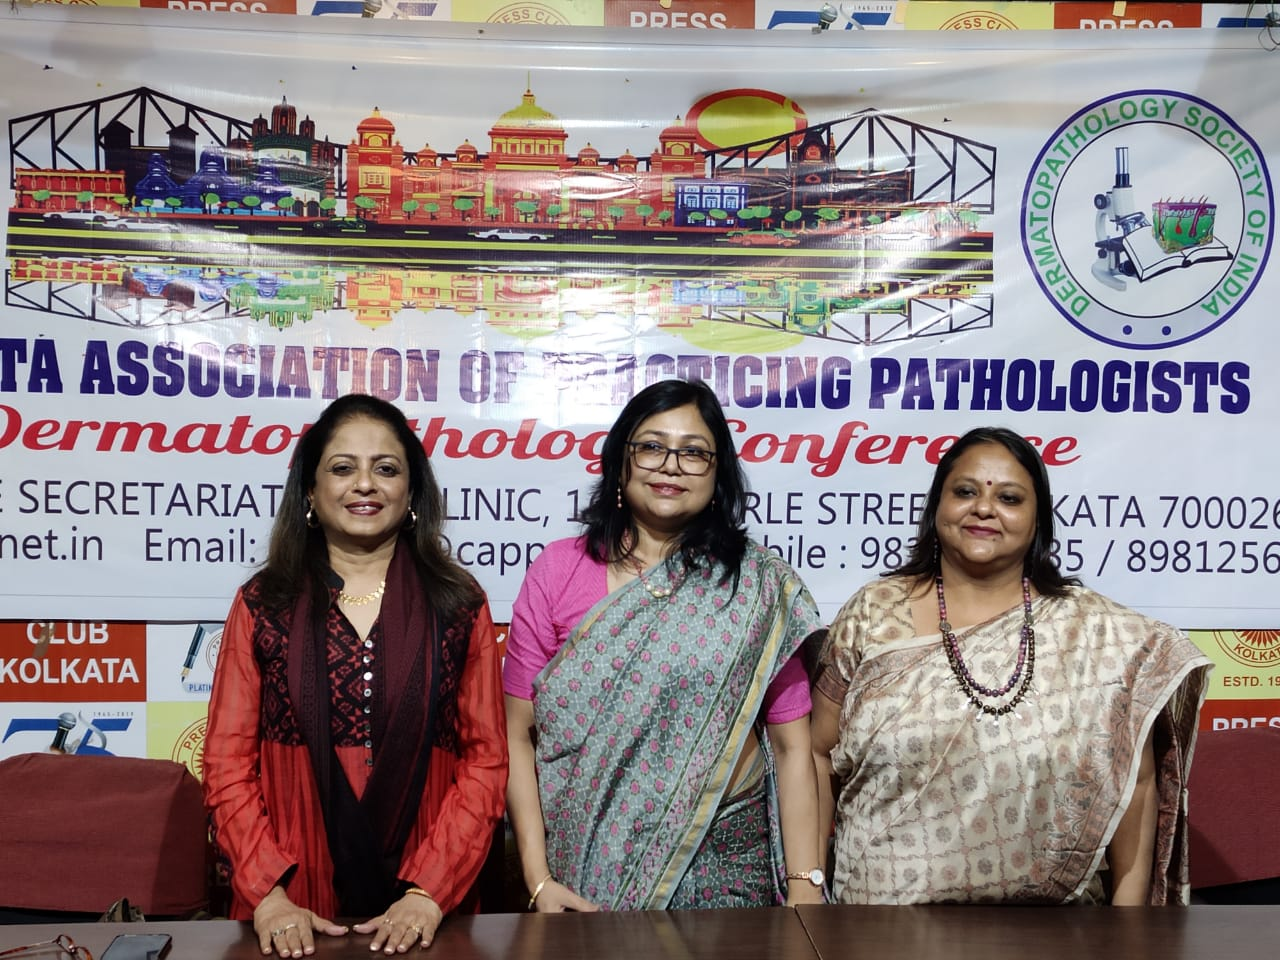 Press meet for Dermatopathology conference on 14th & 15th March 2020 at Kolkata